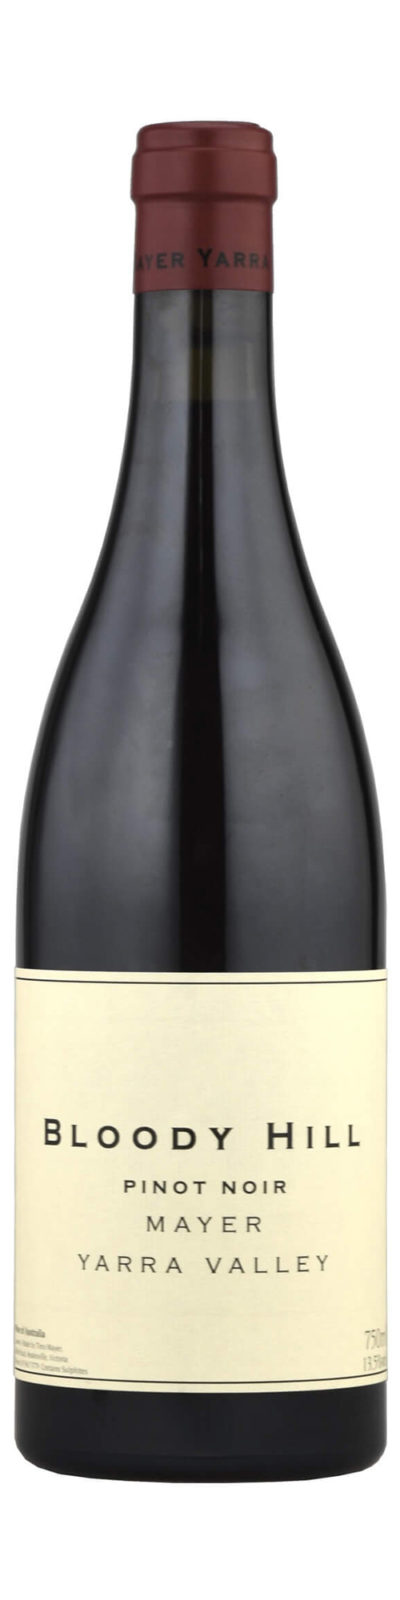 Timo Mayer Bloody Hill Pinot Noir